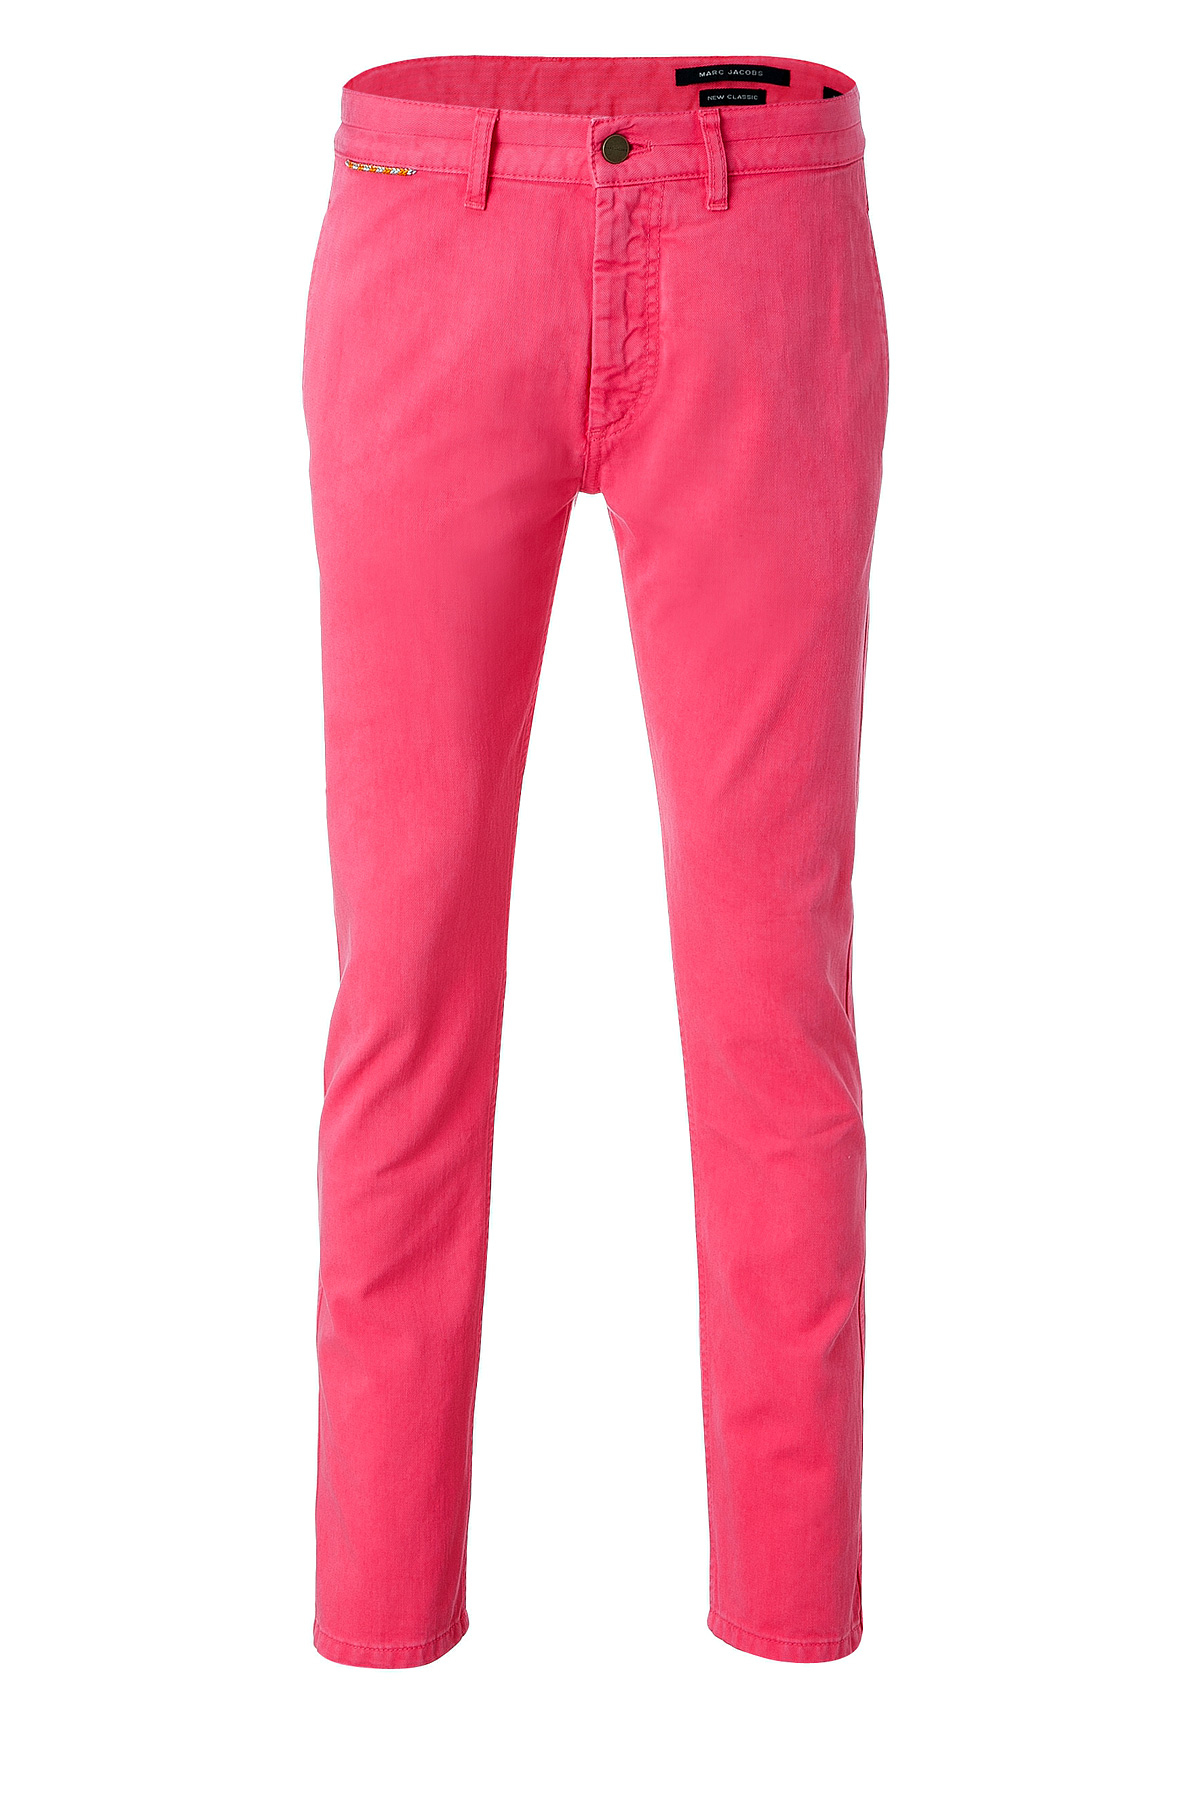 Free shipping and returns on All Men's Pink Clothing at lidarwindtechnolog.ga